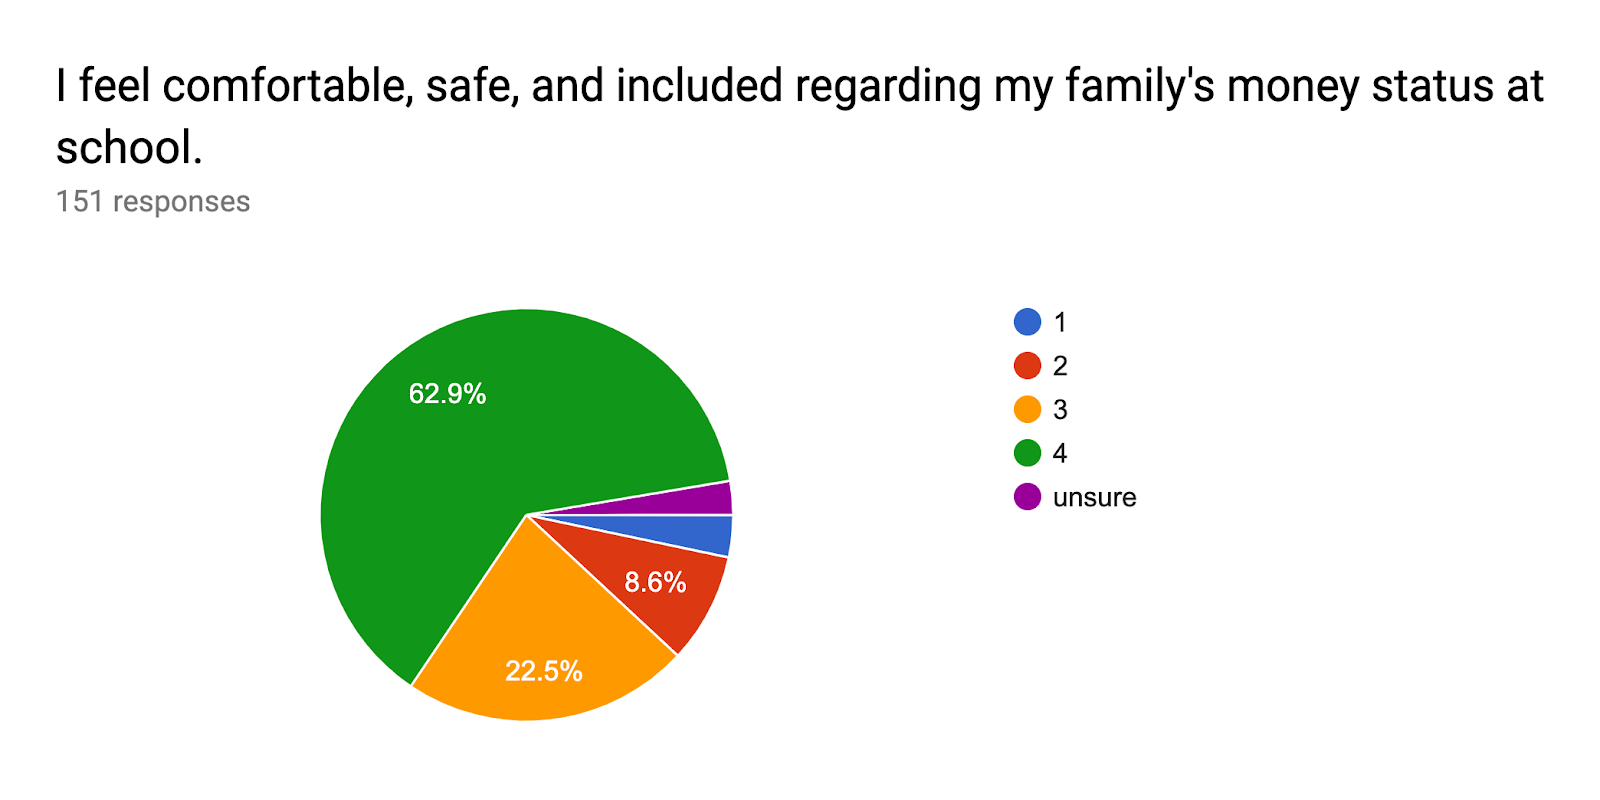 Forms response chart. Question title: I feel comfortable, safe, and included regarding my family's money status at school.. Number of responses: 151 responses.